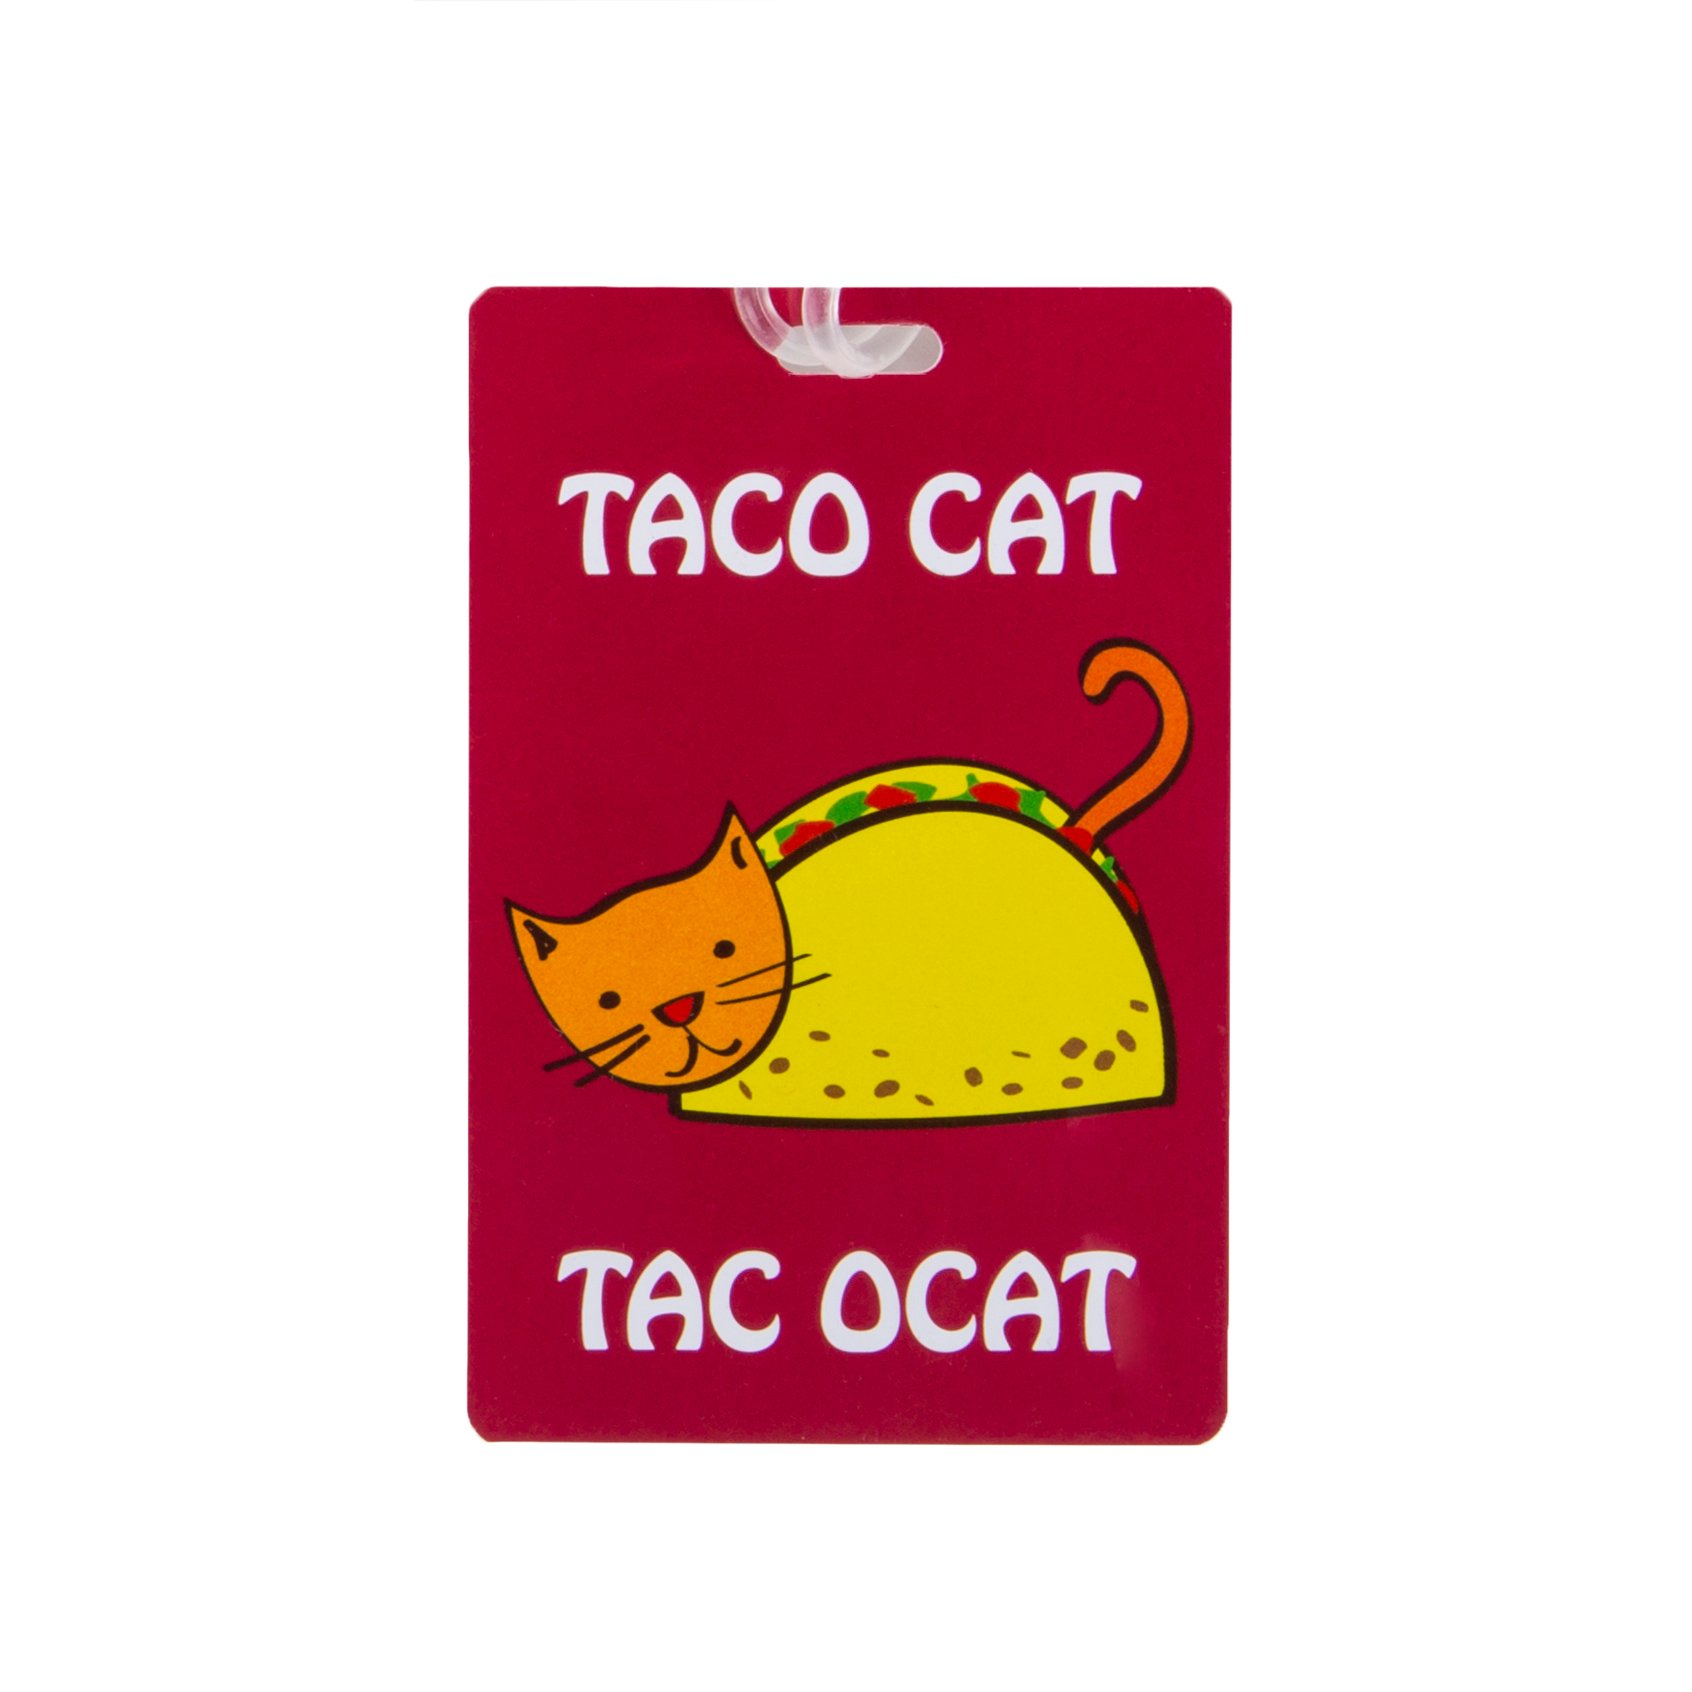 Travelon Personal Expression Luggage Tag,Taco Cat by Travelon (Image #1)